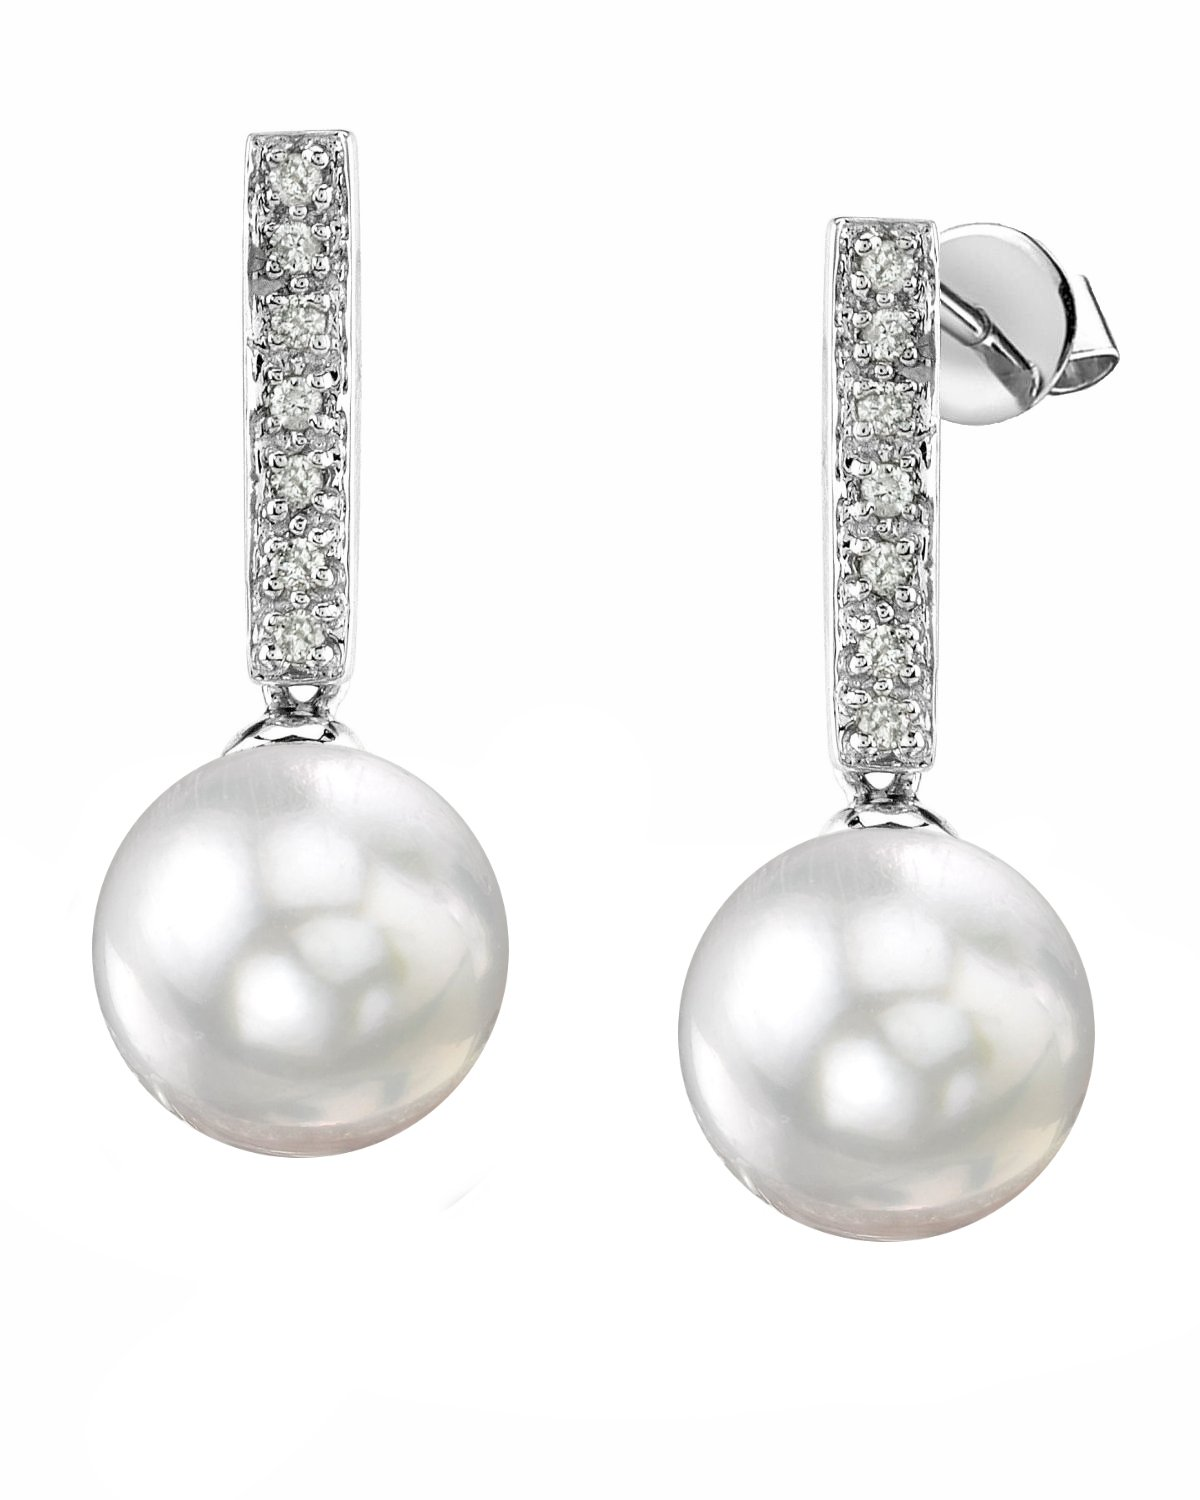 South Sea Pearl Dangling Diamond Earrings